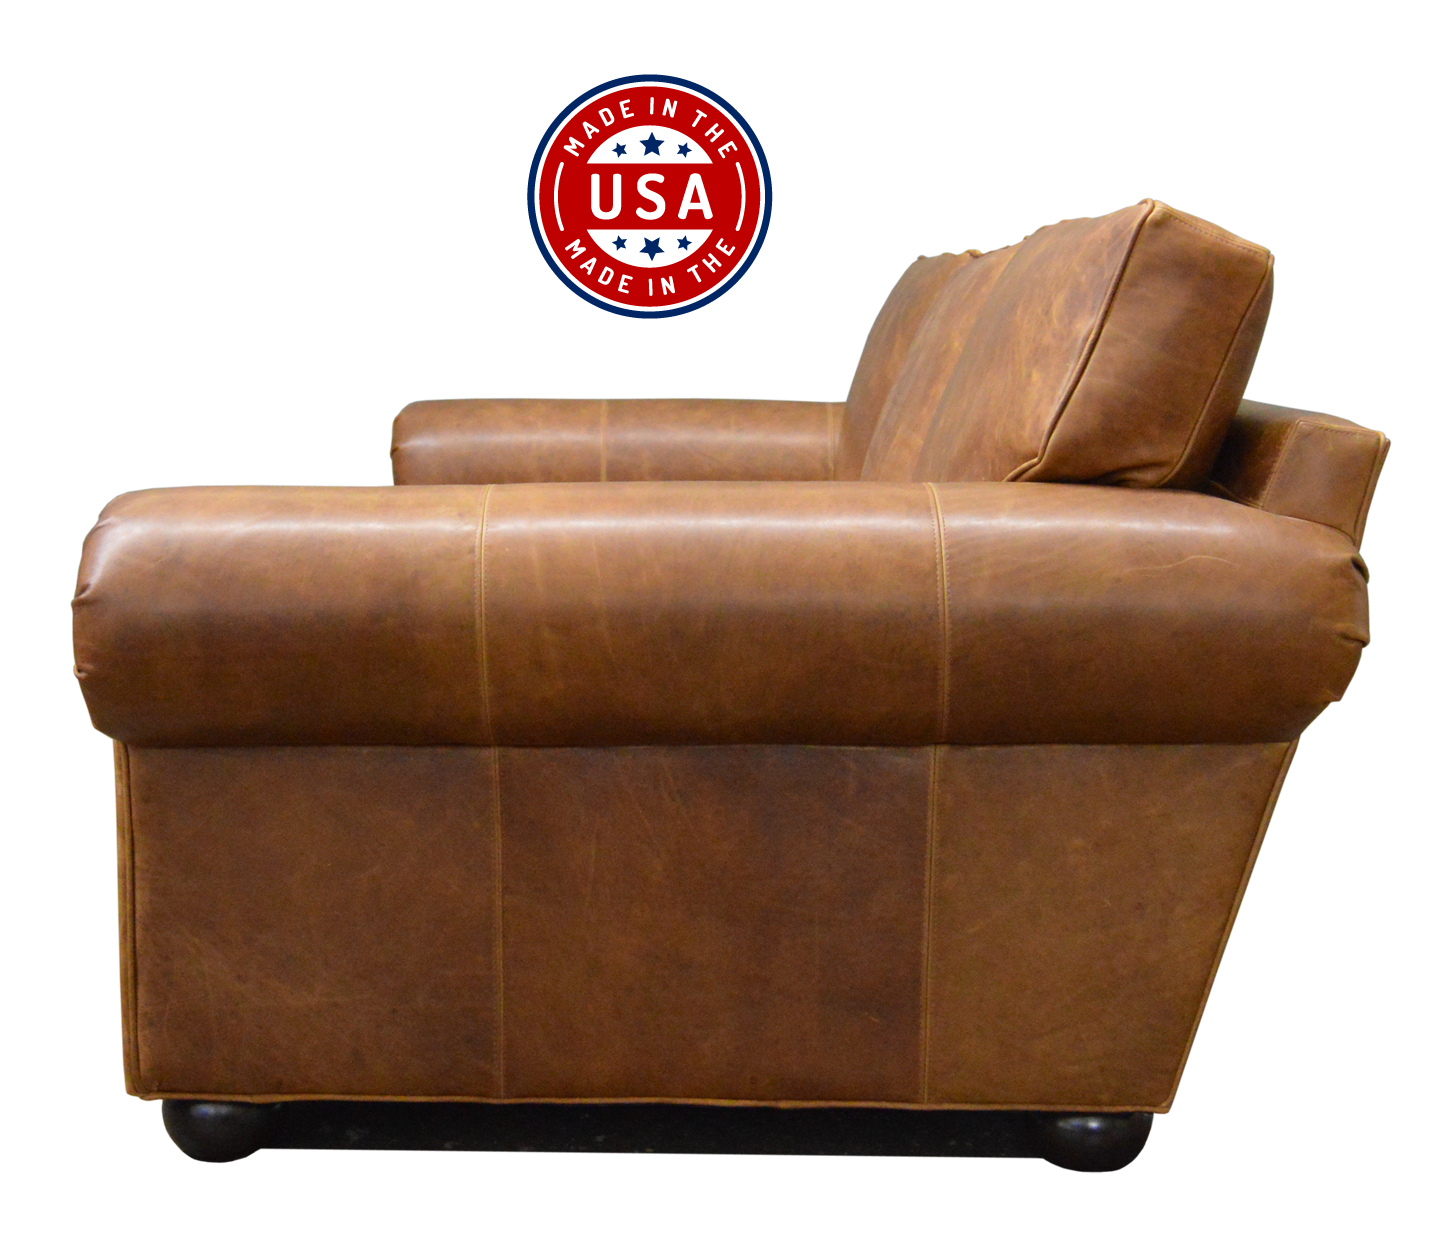 Langston Leather Sofa in Italian Brentwood Tan Leather - side view